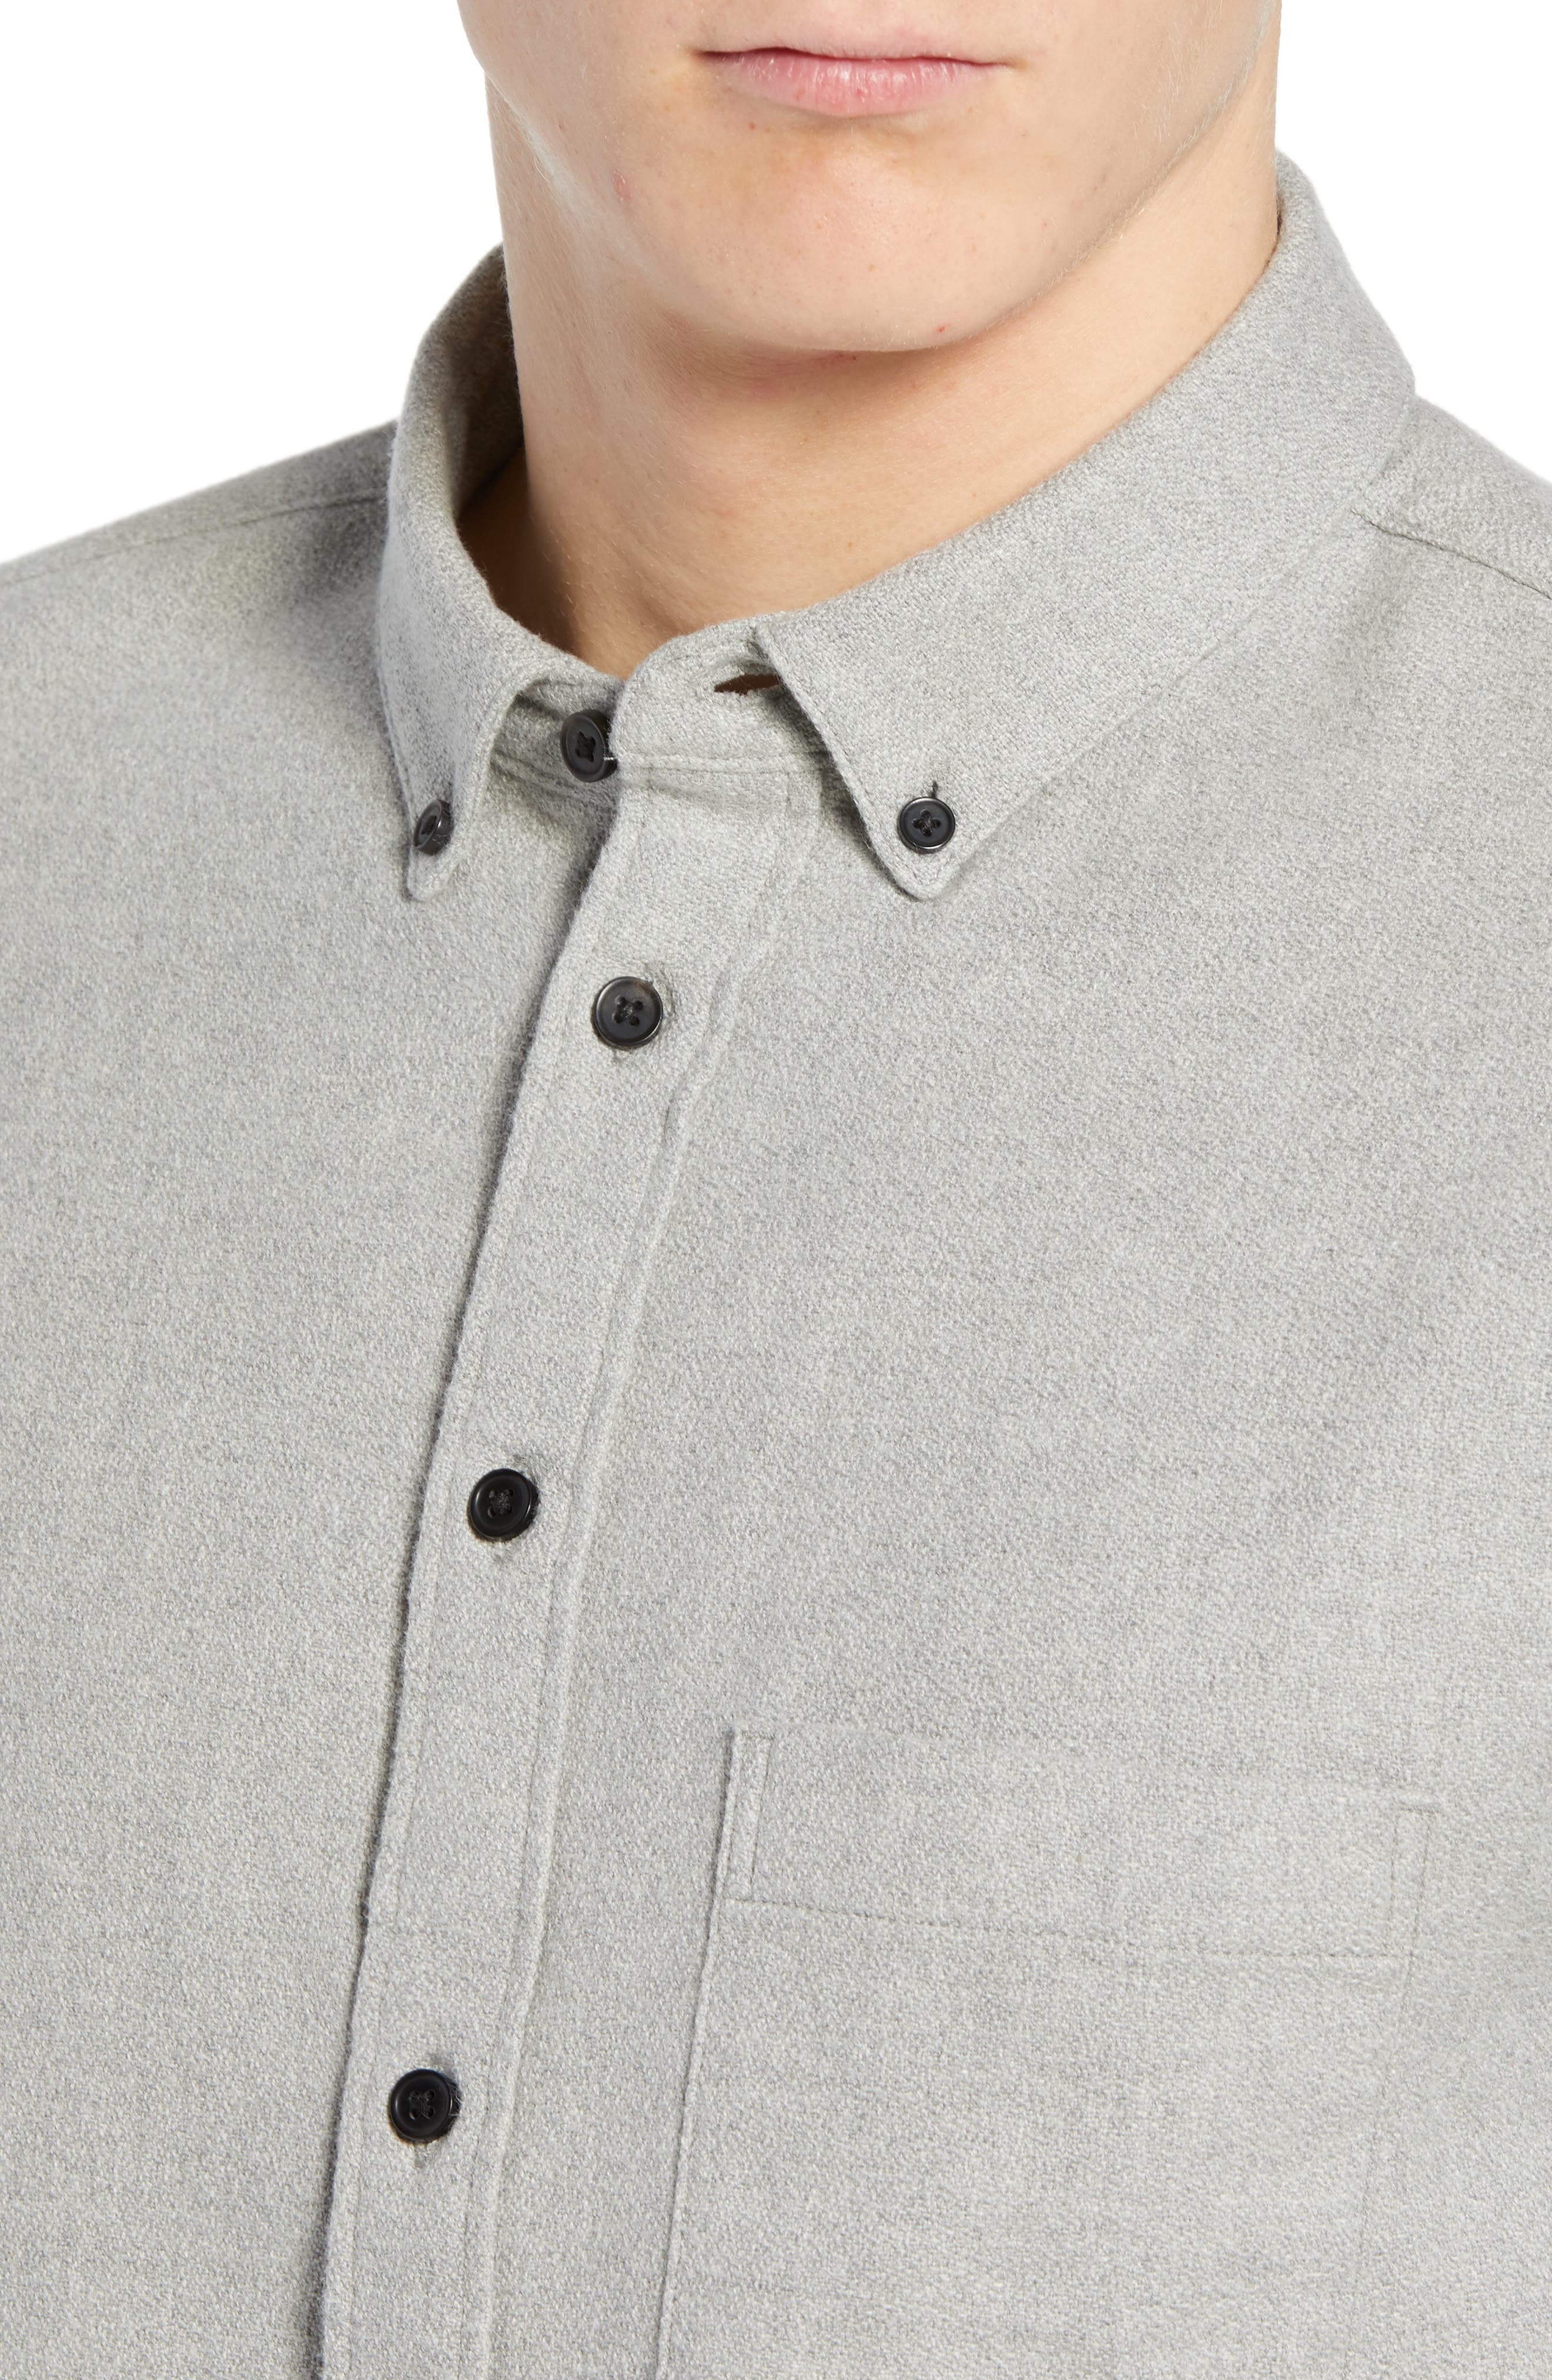 Levi's<sup>®</sup> Made & Crafted Regular Fit Mélange Shirt,                             Alternate thumbnail 2, color,                             020